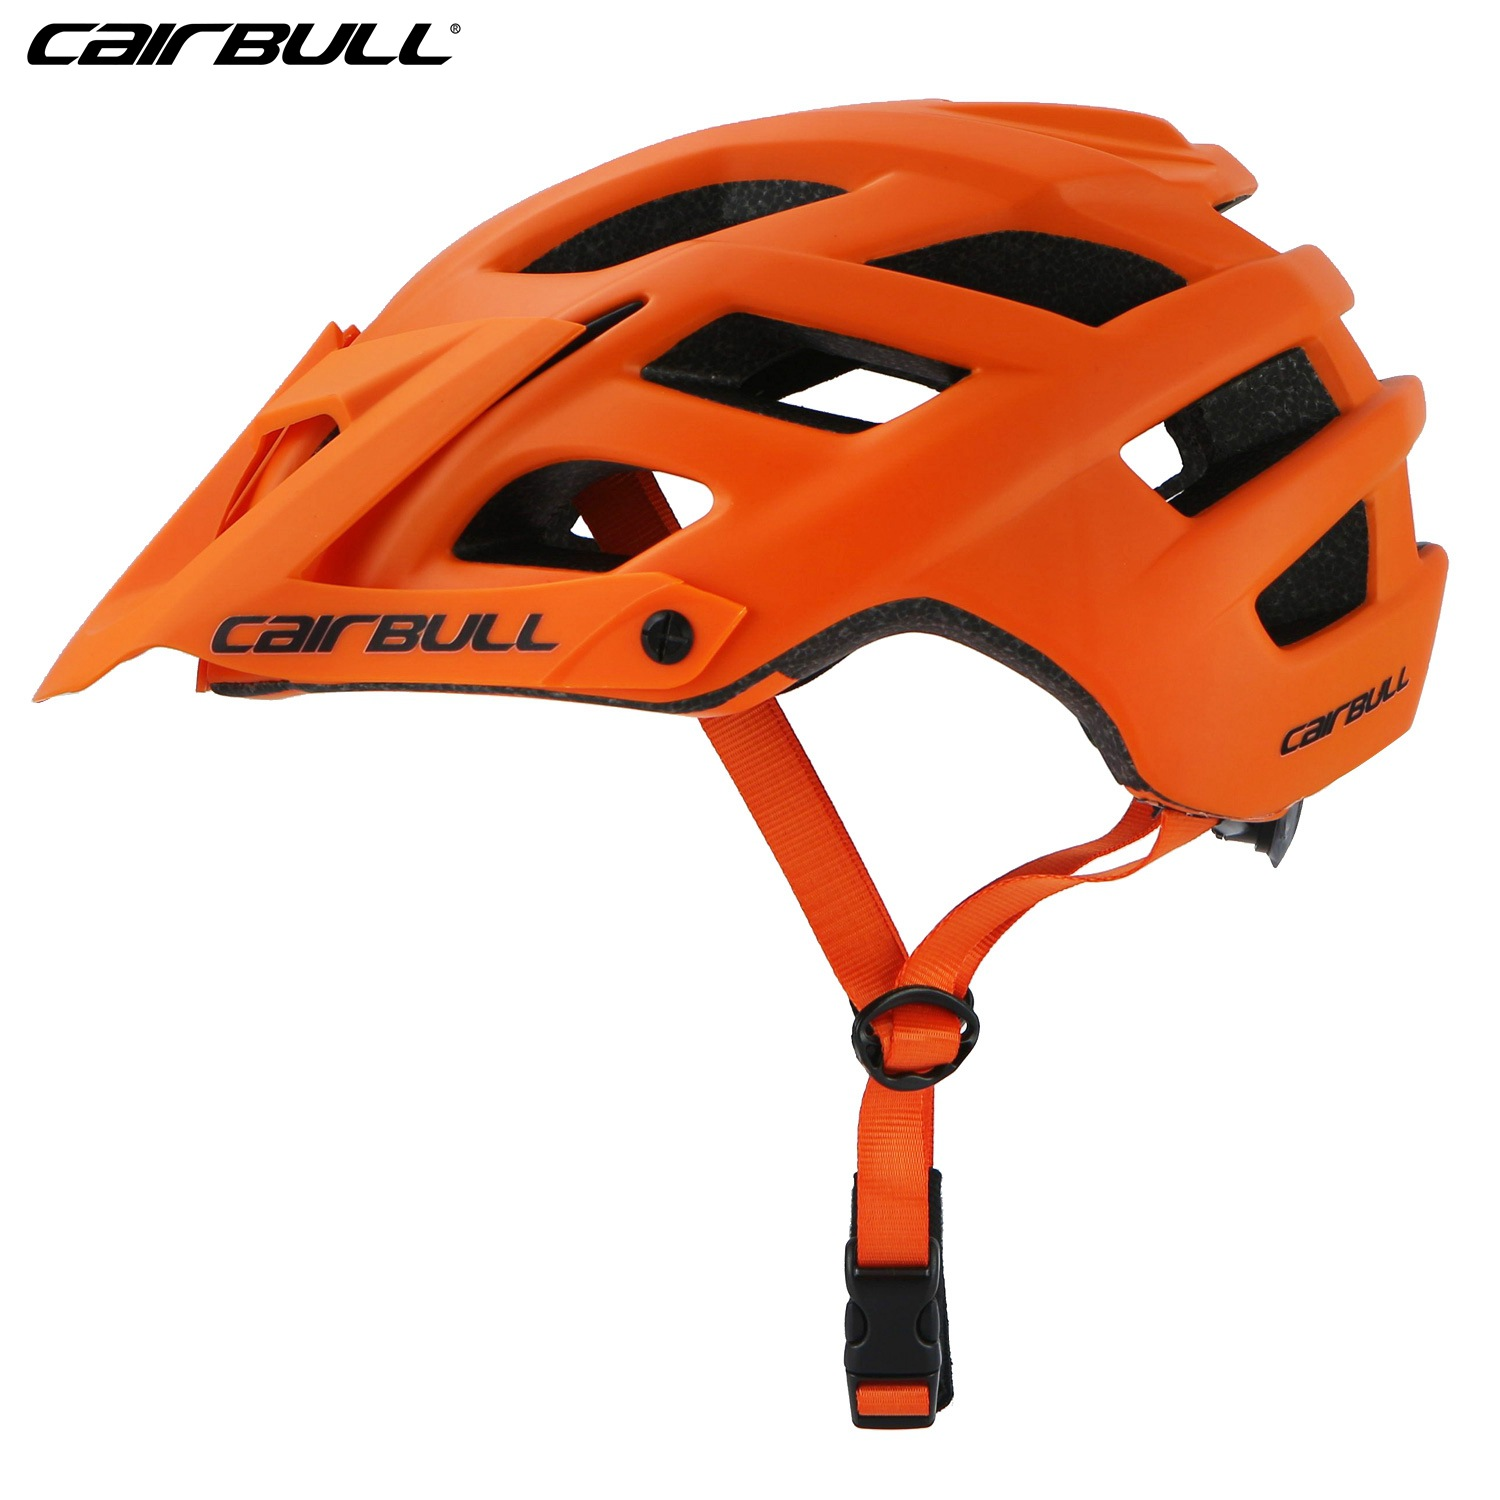 CAIRBULL 2018 New TRAIL XC Bicycle Helmet All-terrai Cycling Bike Sports Safety Cap OFF-ROAD Super Mountain Bike Cycling Helmet